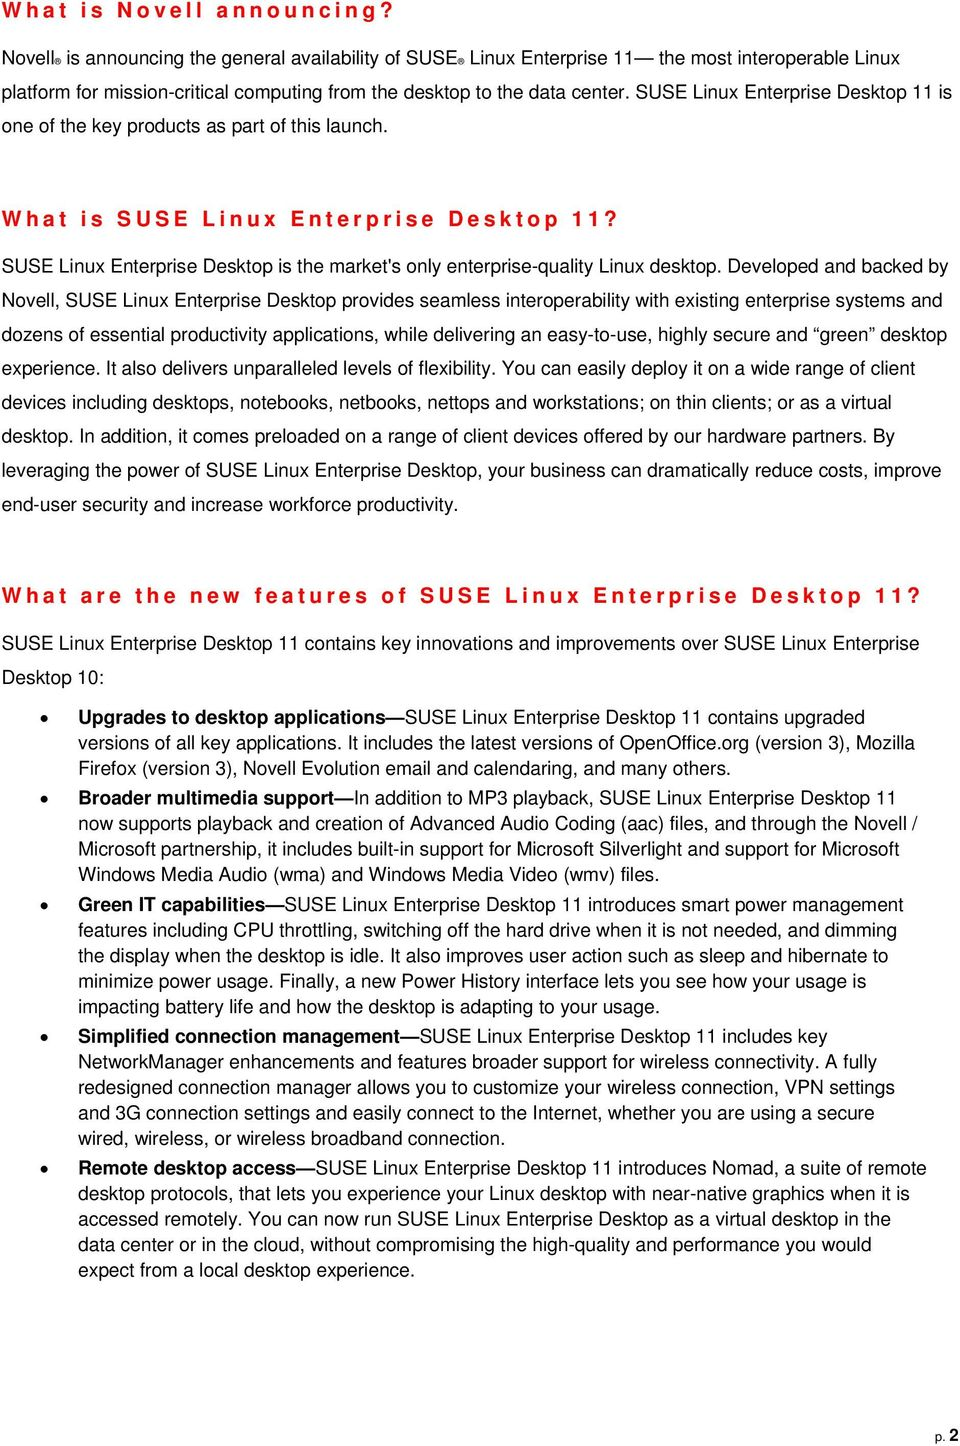 SUSE Linux Enterprise Desktop 11 is one of the key products as part of this launch. What is SUSE Linux Enterprise Desktop 11?